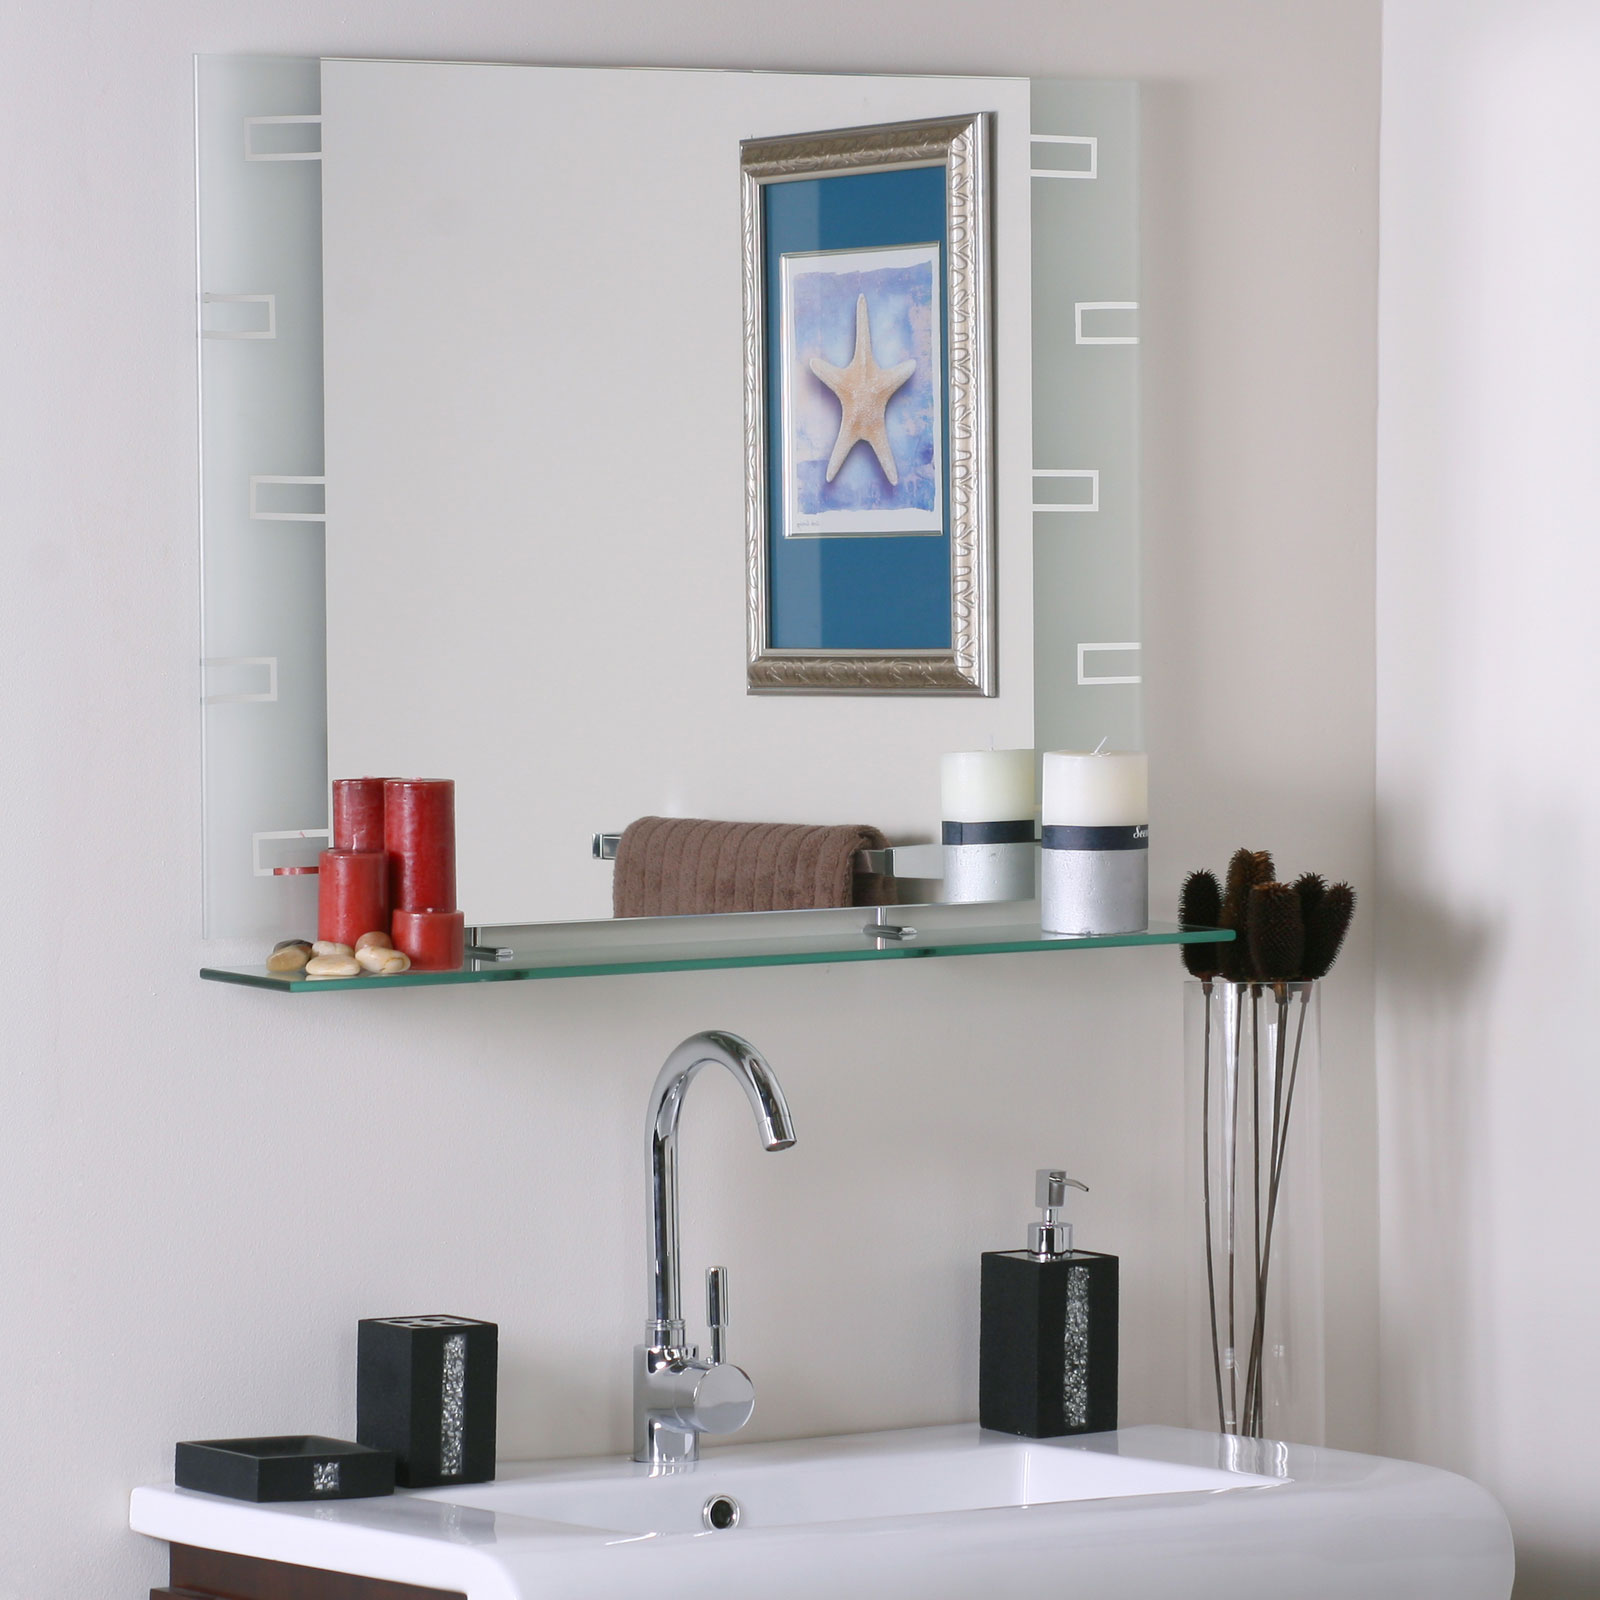 Frameless Contemporary Bathroom Mirror With Shelf Image